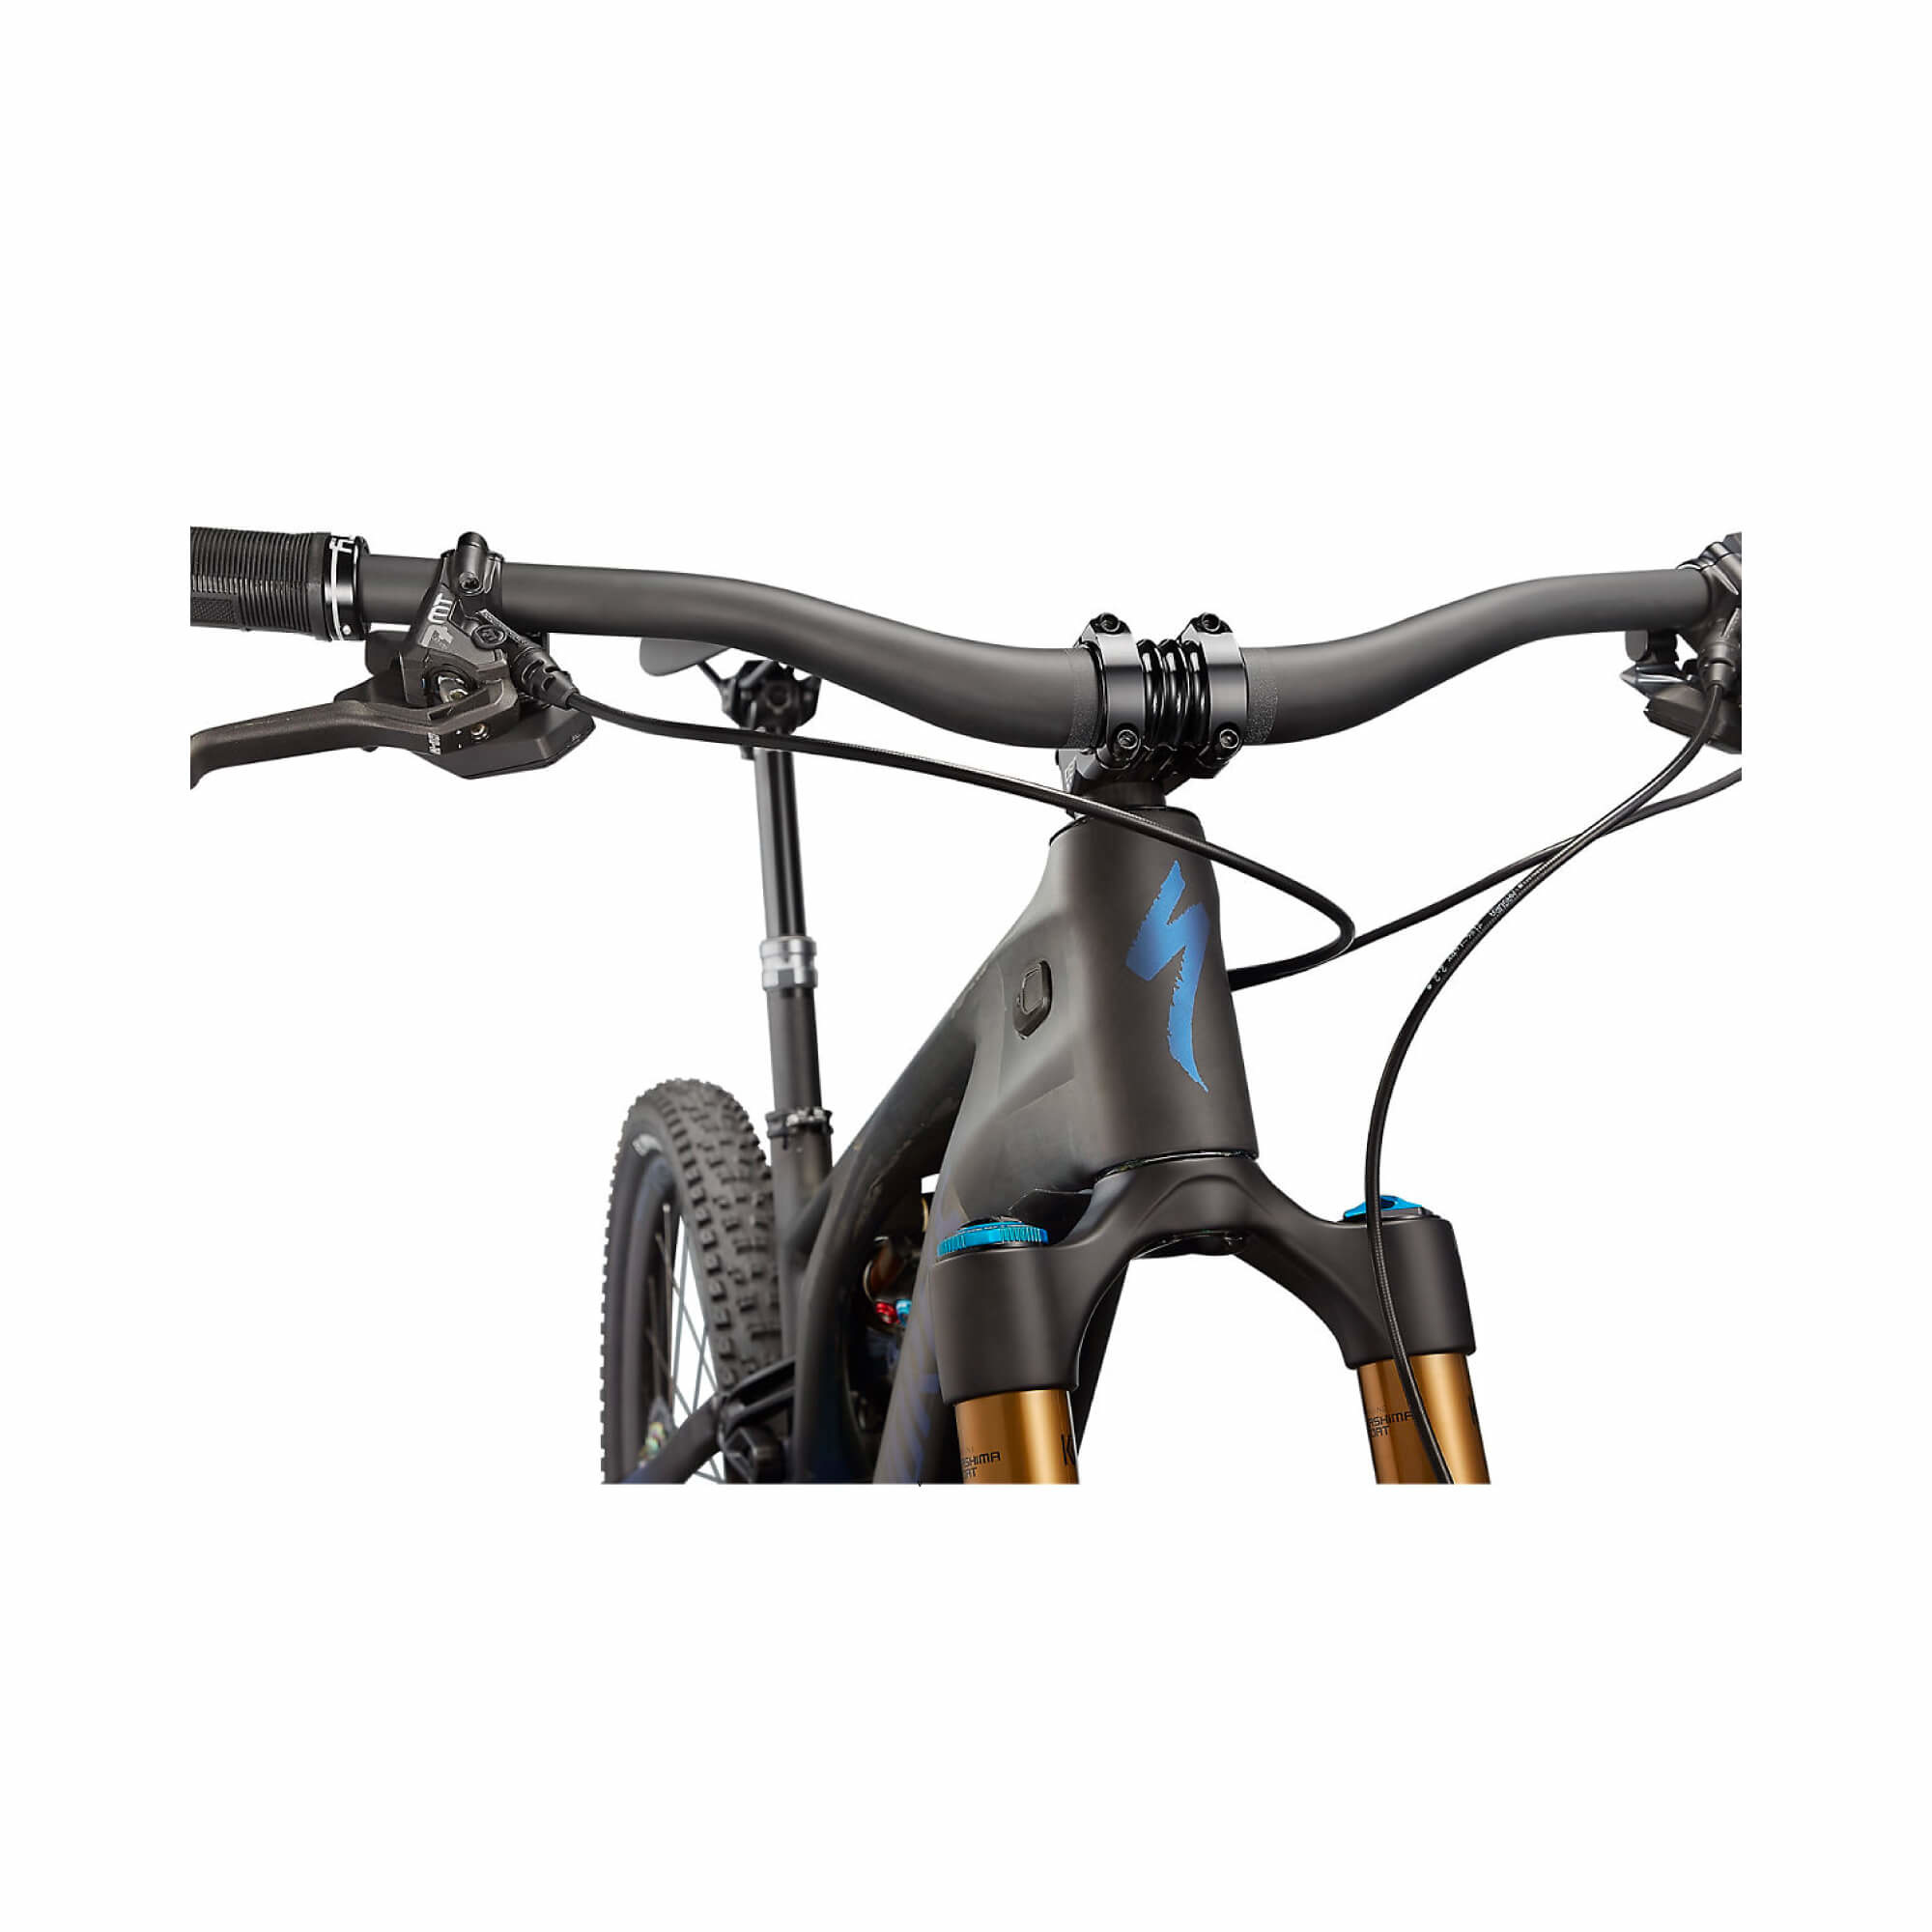 S-Works Turbo Levo 2022-6